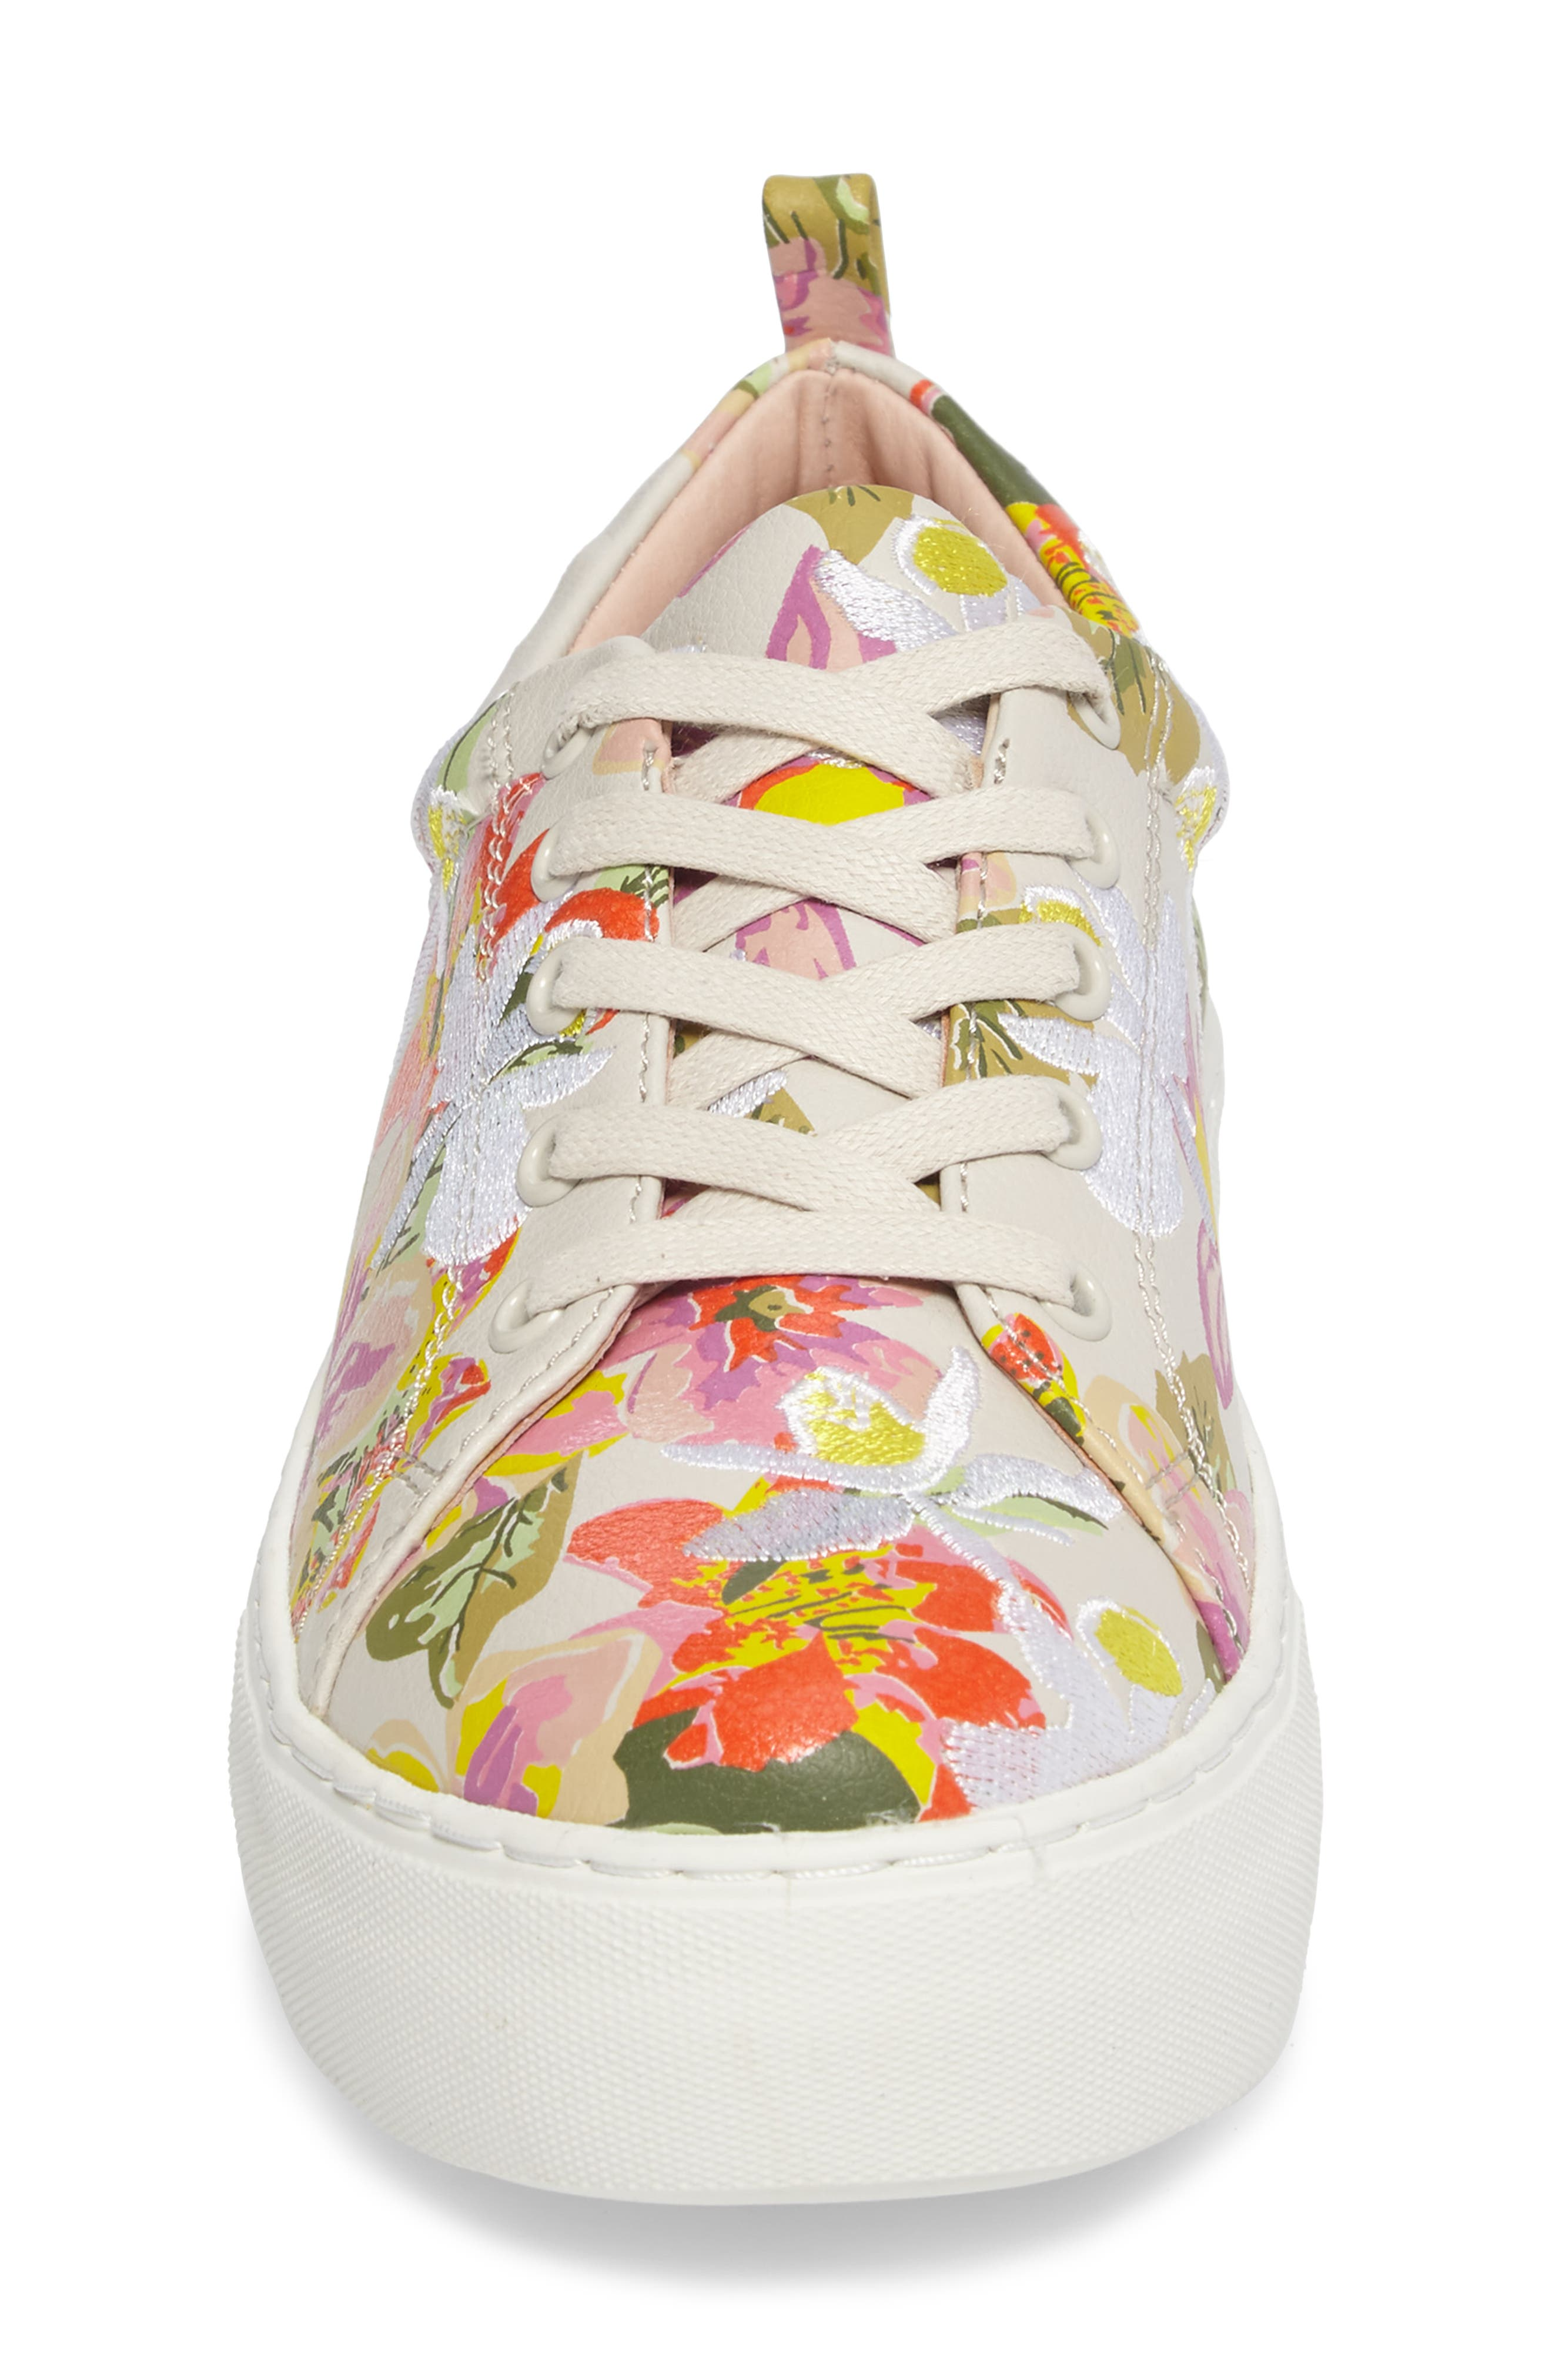 Appy Embroidered Platform Sneaker,                             Alternate thumbnail 4, color,                             Pink Multi Fabric